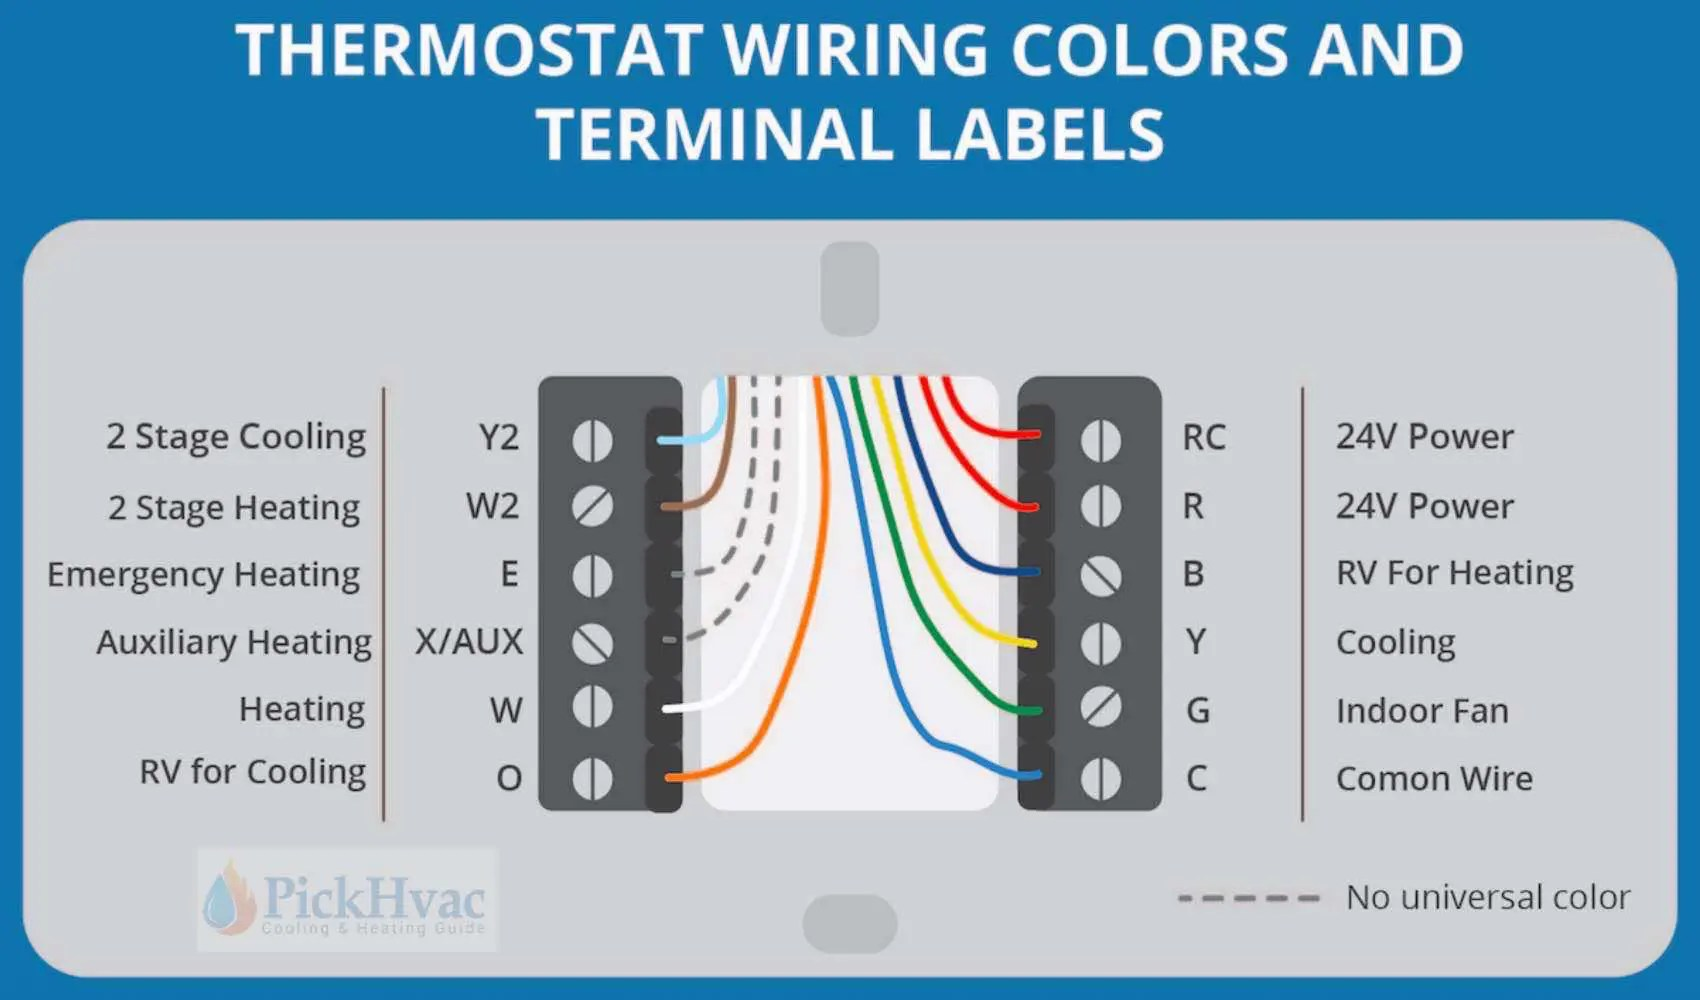 hight resolution of thermostat wiring colors to labels